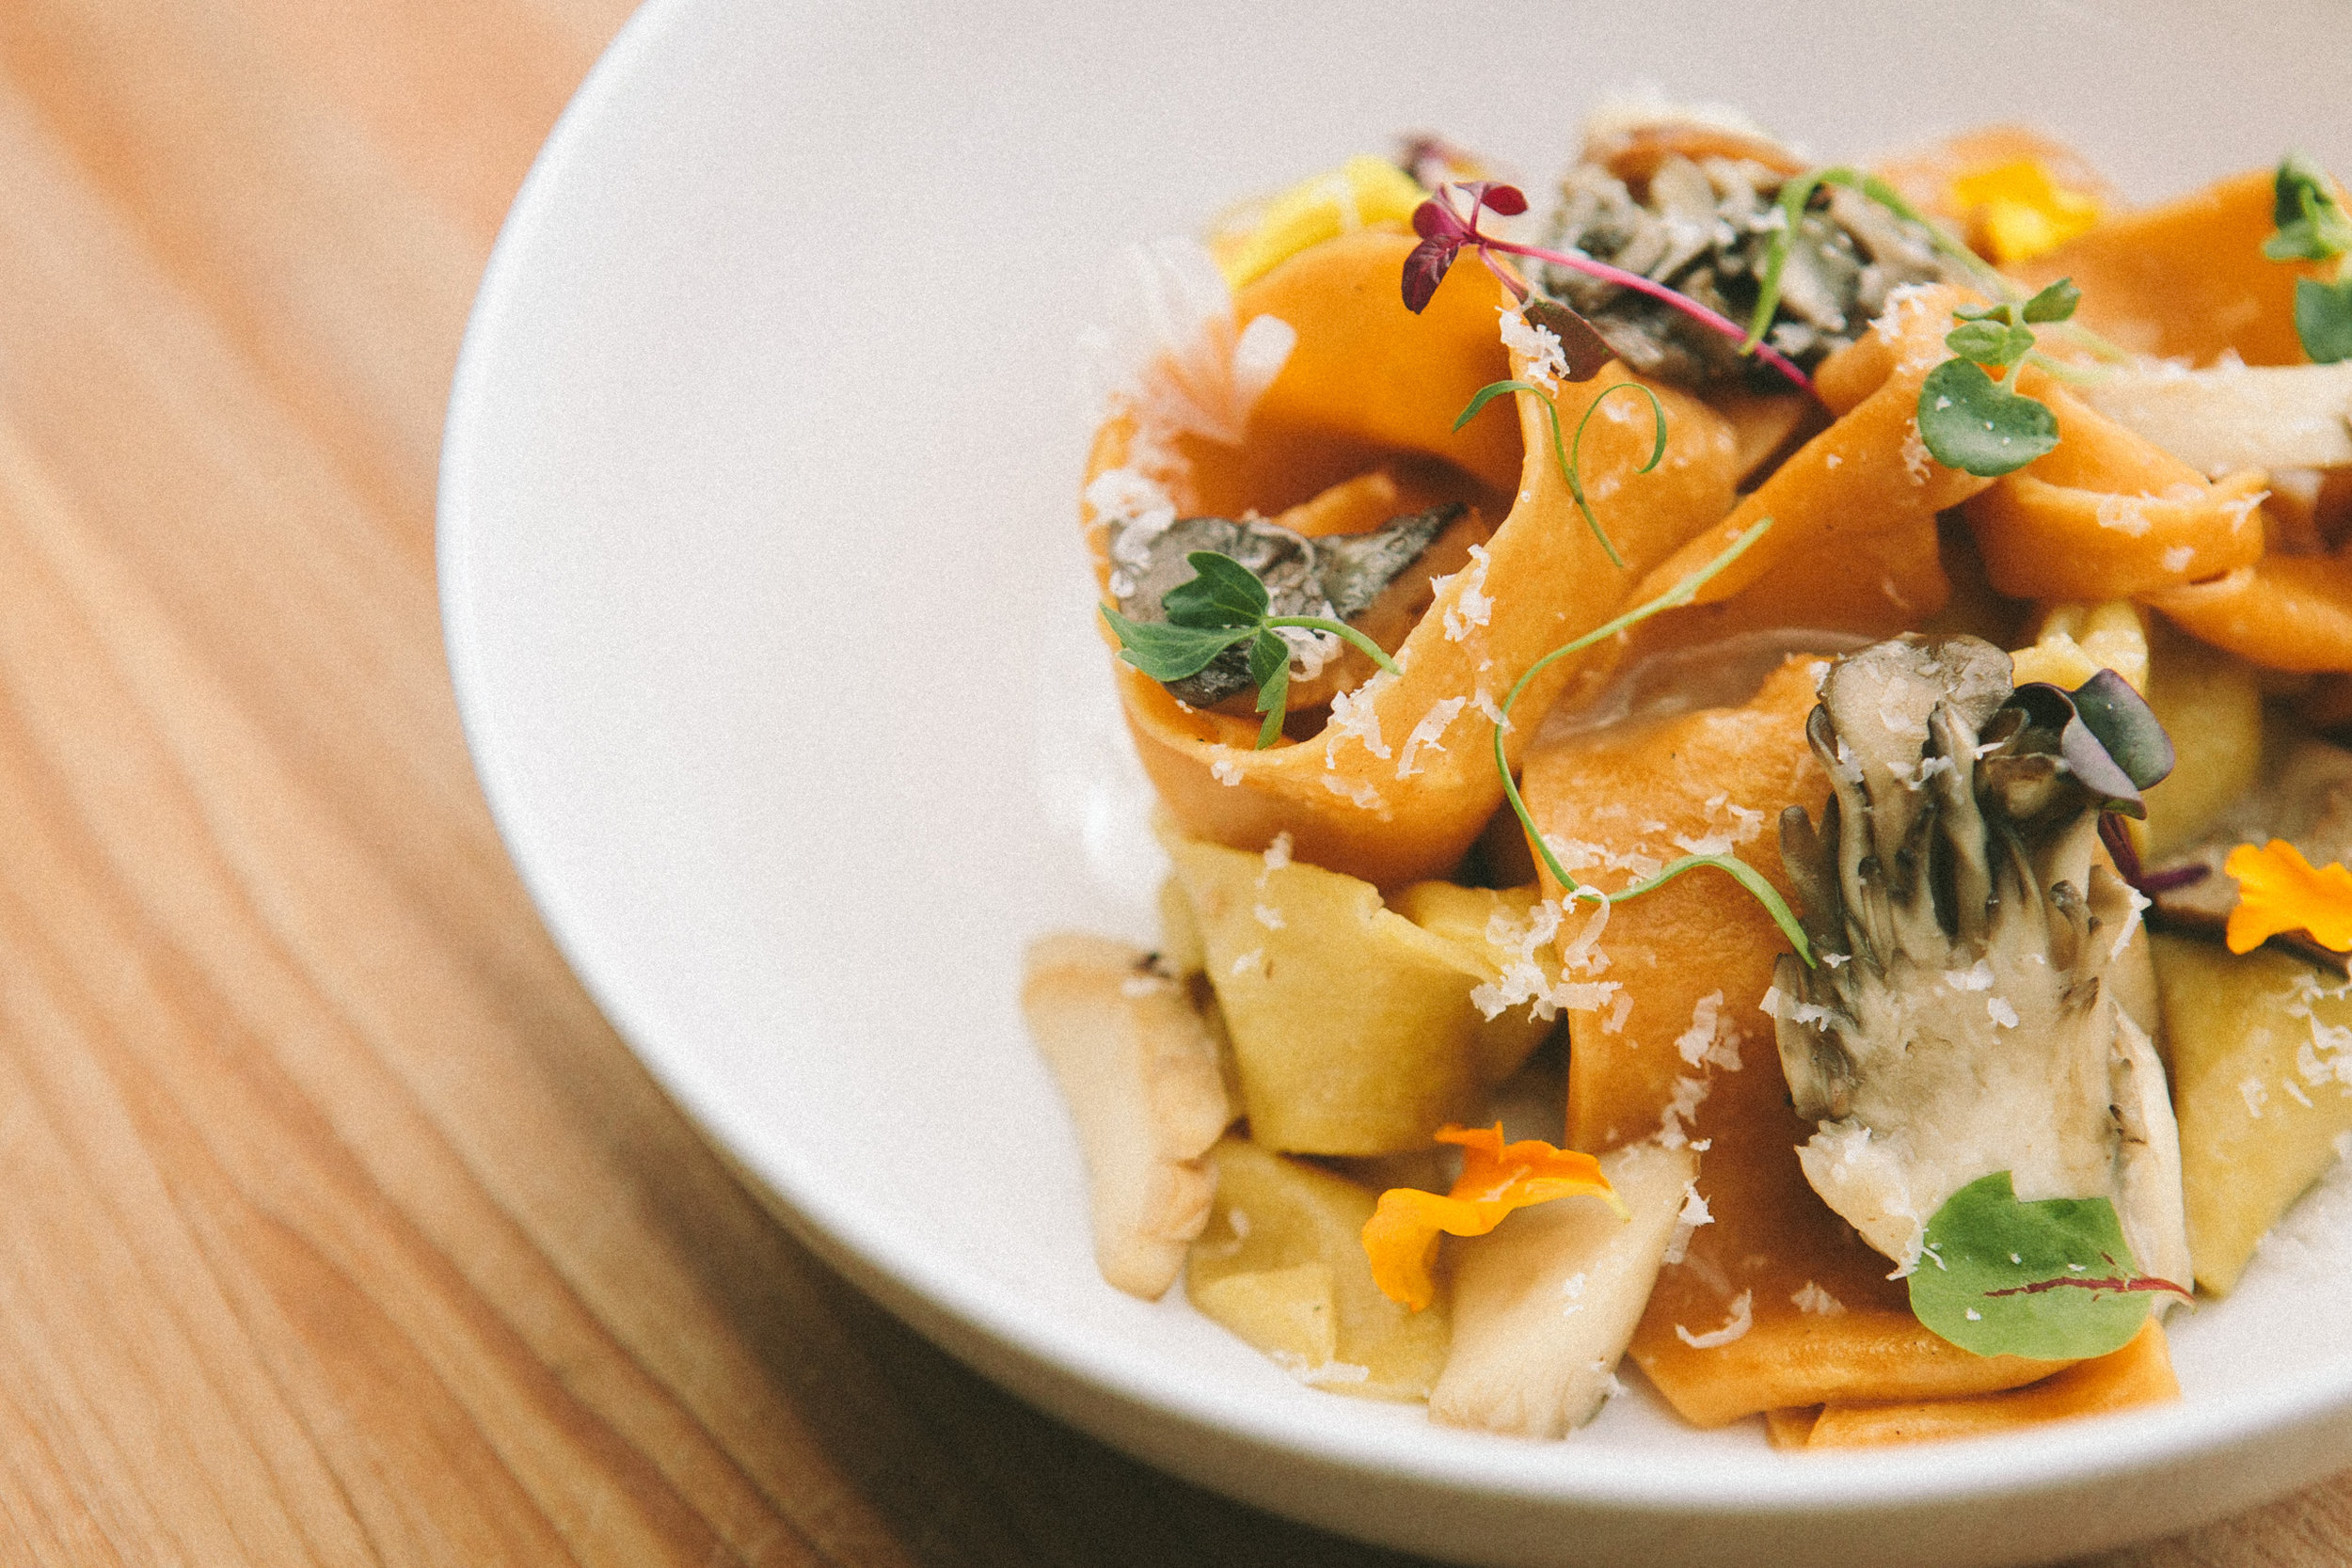 Pappardelle, Funghi &Parmigiano Reggiano 24 months